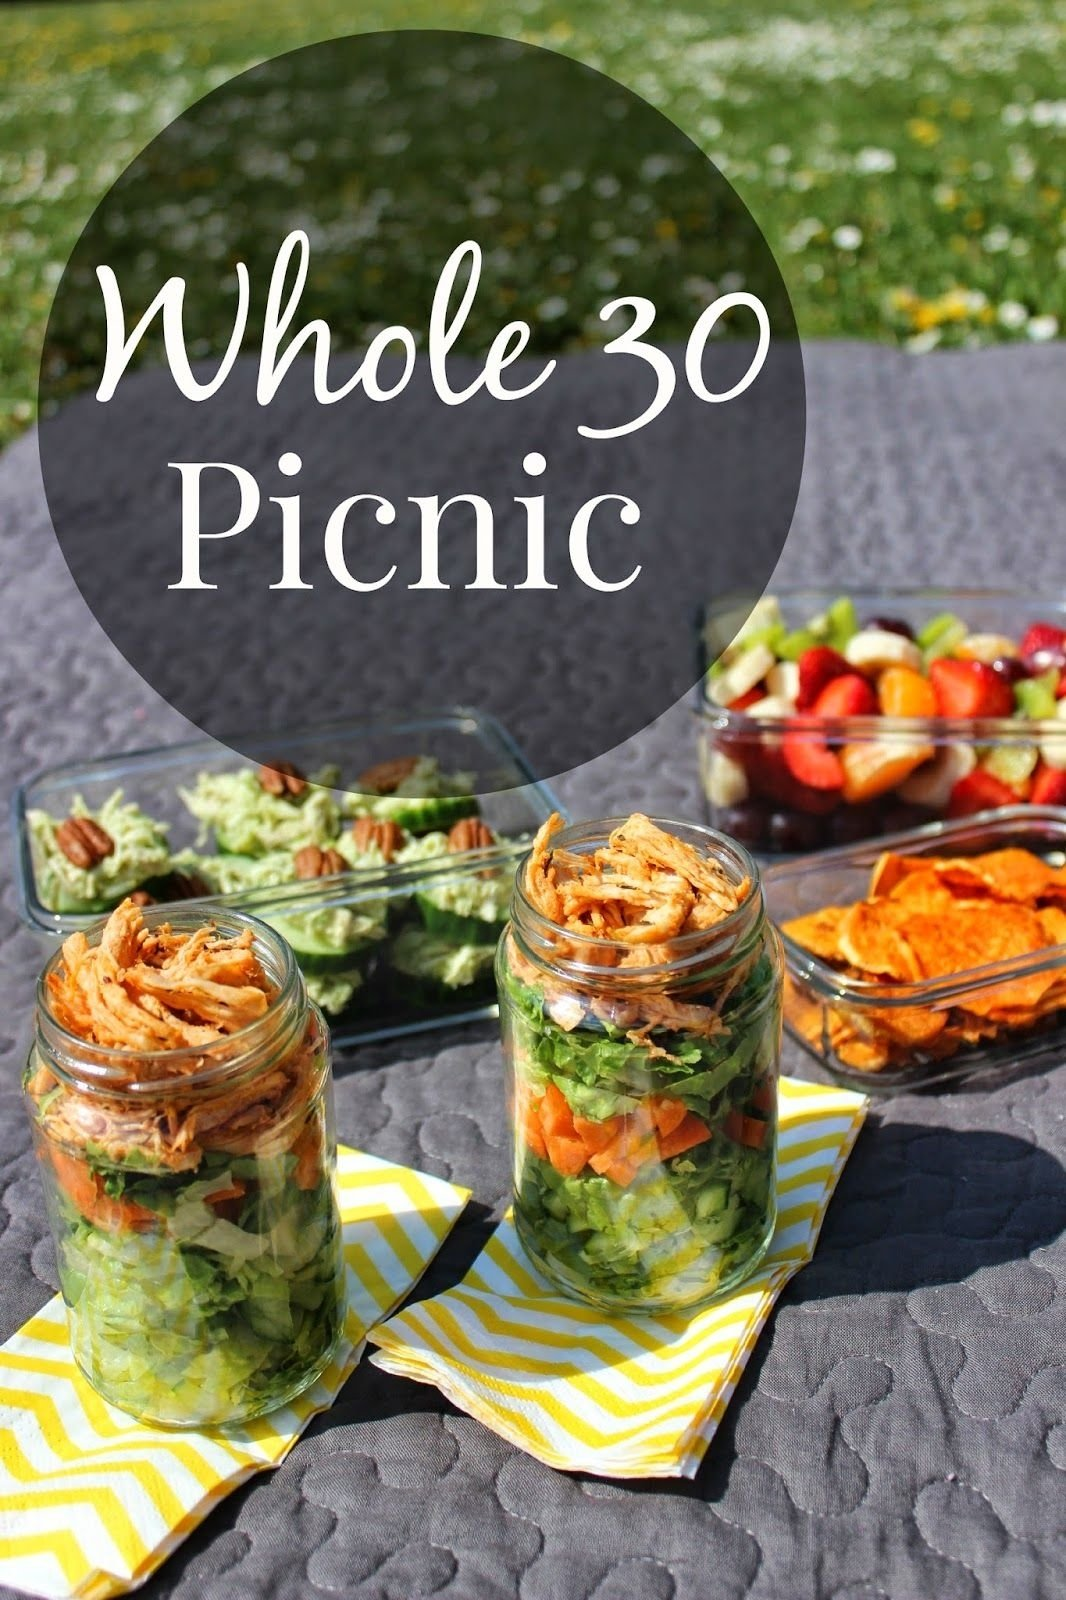 10 Unique Picnic Food Ideas For A Date lew party of 2 picnic whole 30 style paleo pinterest picnics